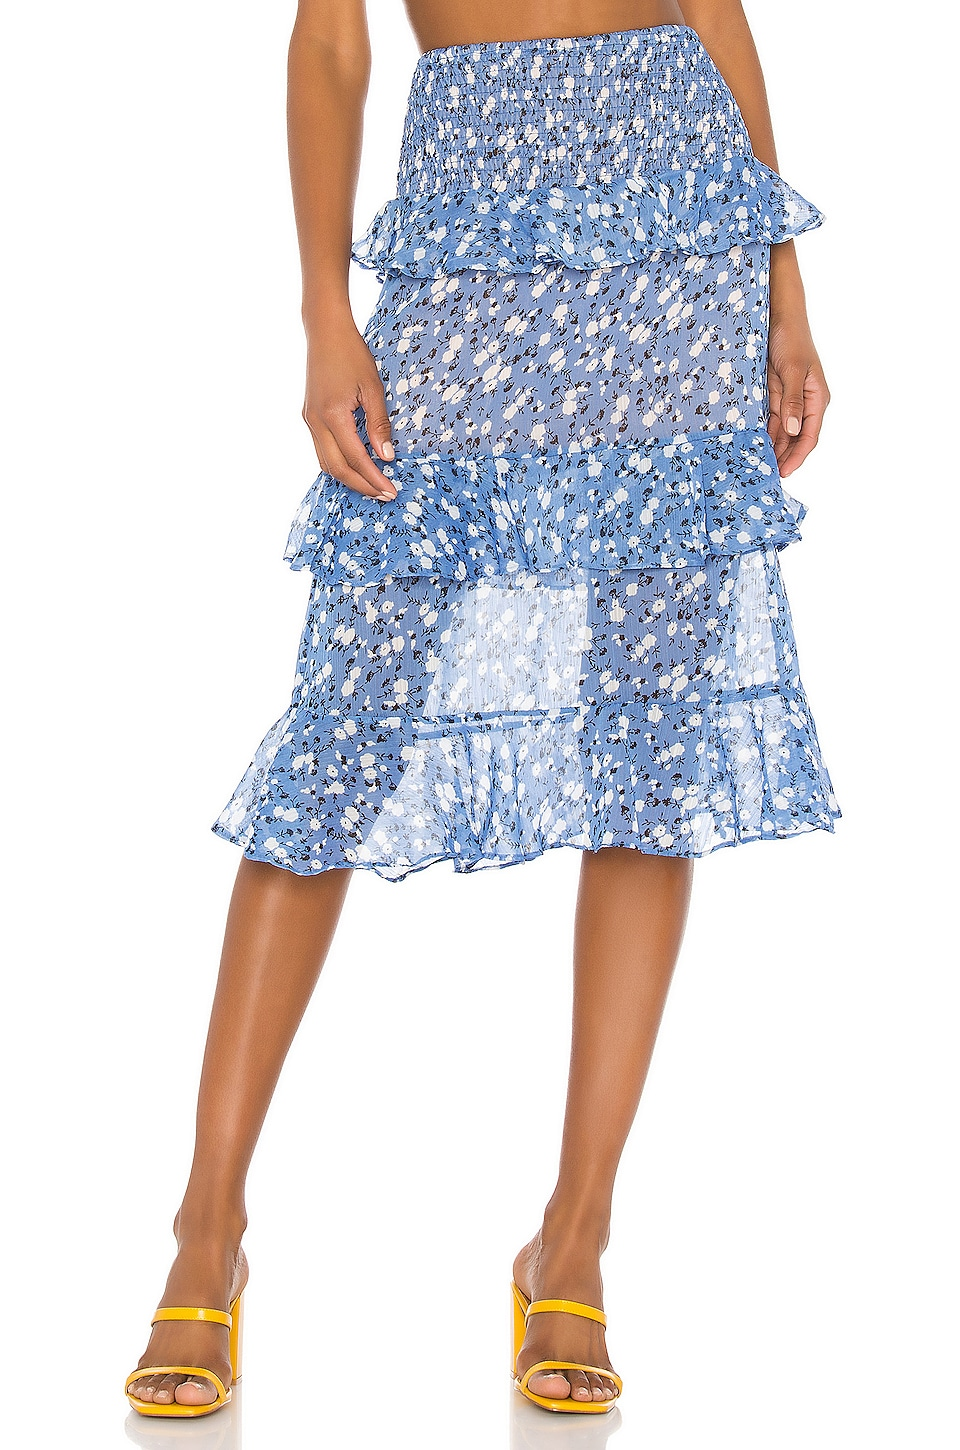 MAJORELLE Everly Midi Skirt in Blue Ditsy